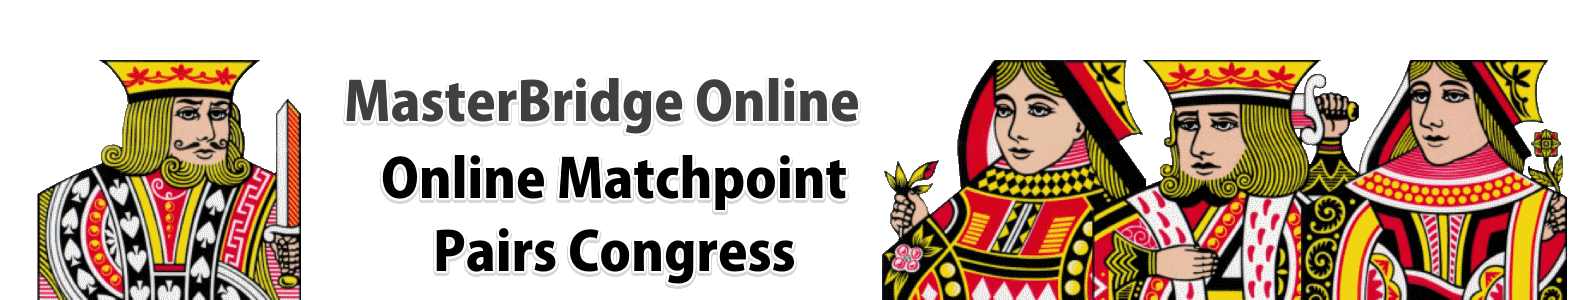 MasterBridge Online Matchpoint Pairs Congress Information Page